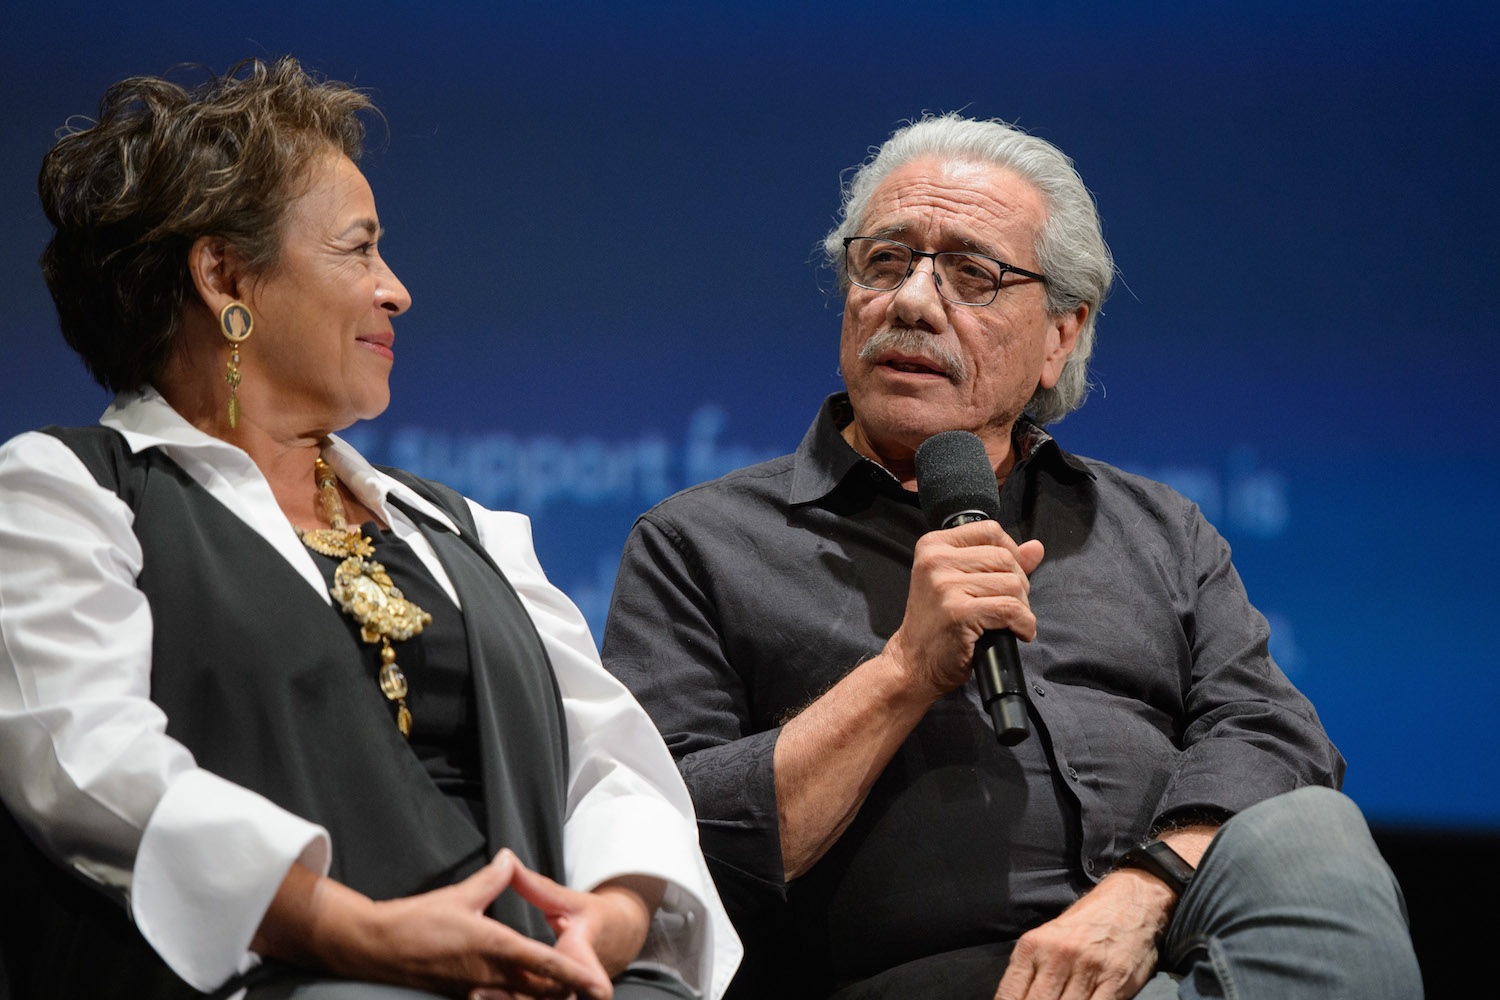 Luis Valdez and Edward James Olmos on White Supremacy and Why 'Zoot Suit' Is Relevant Today